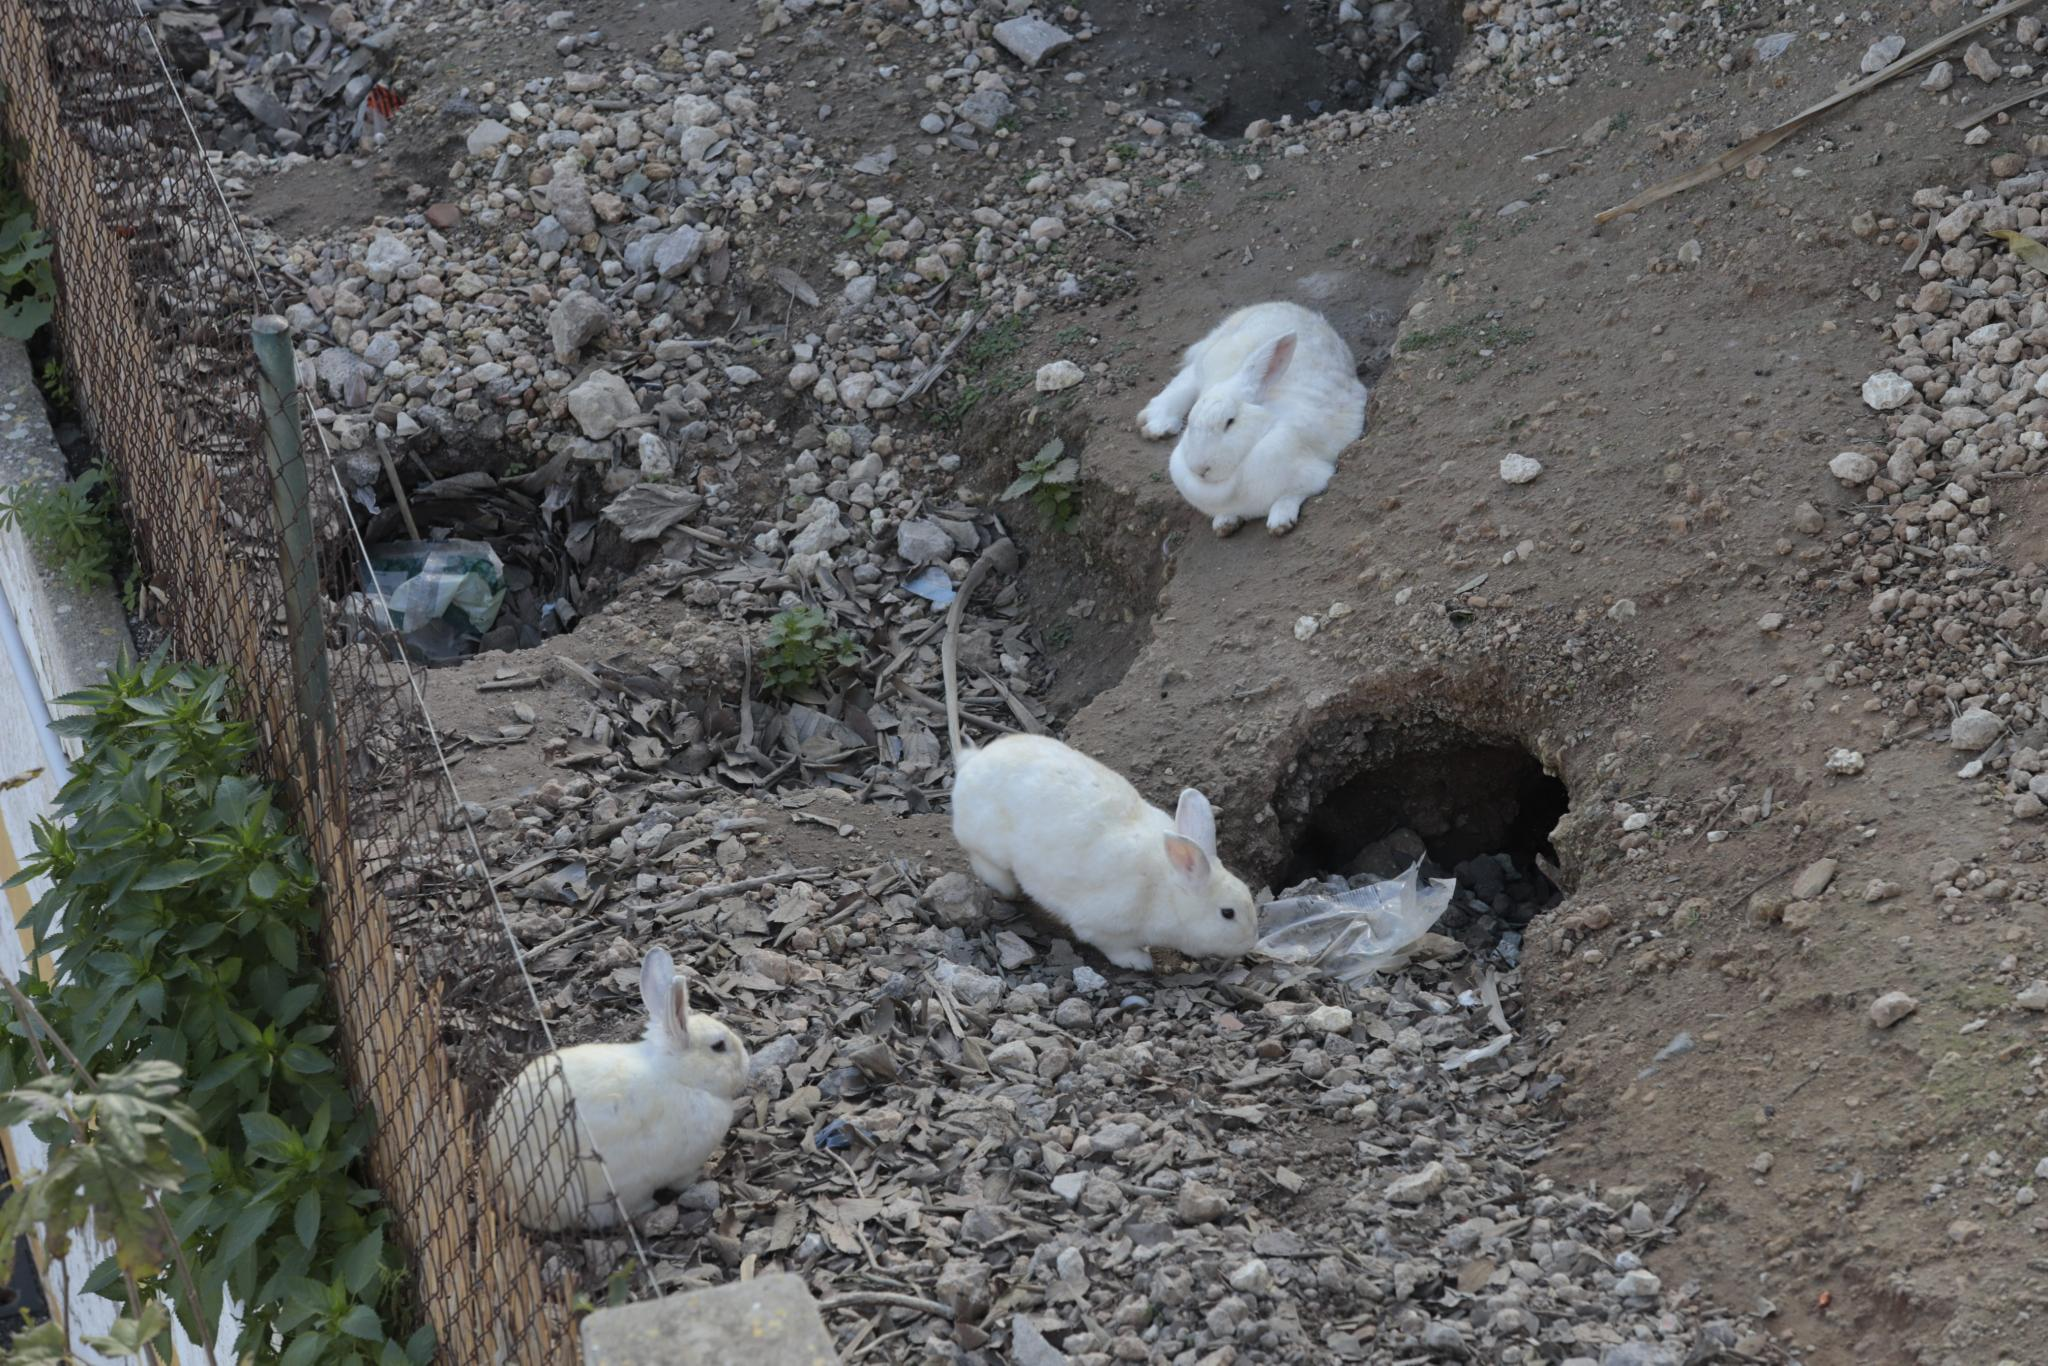 The abandoned site is home to 40 rabbits